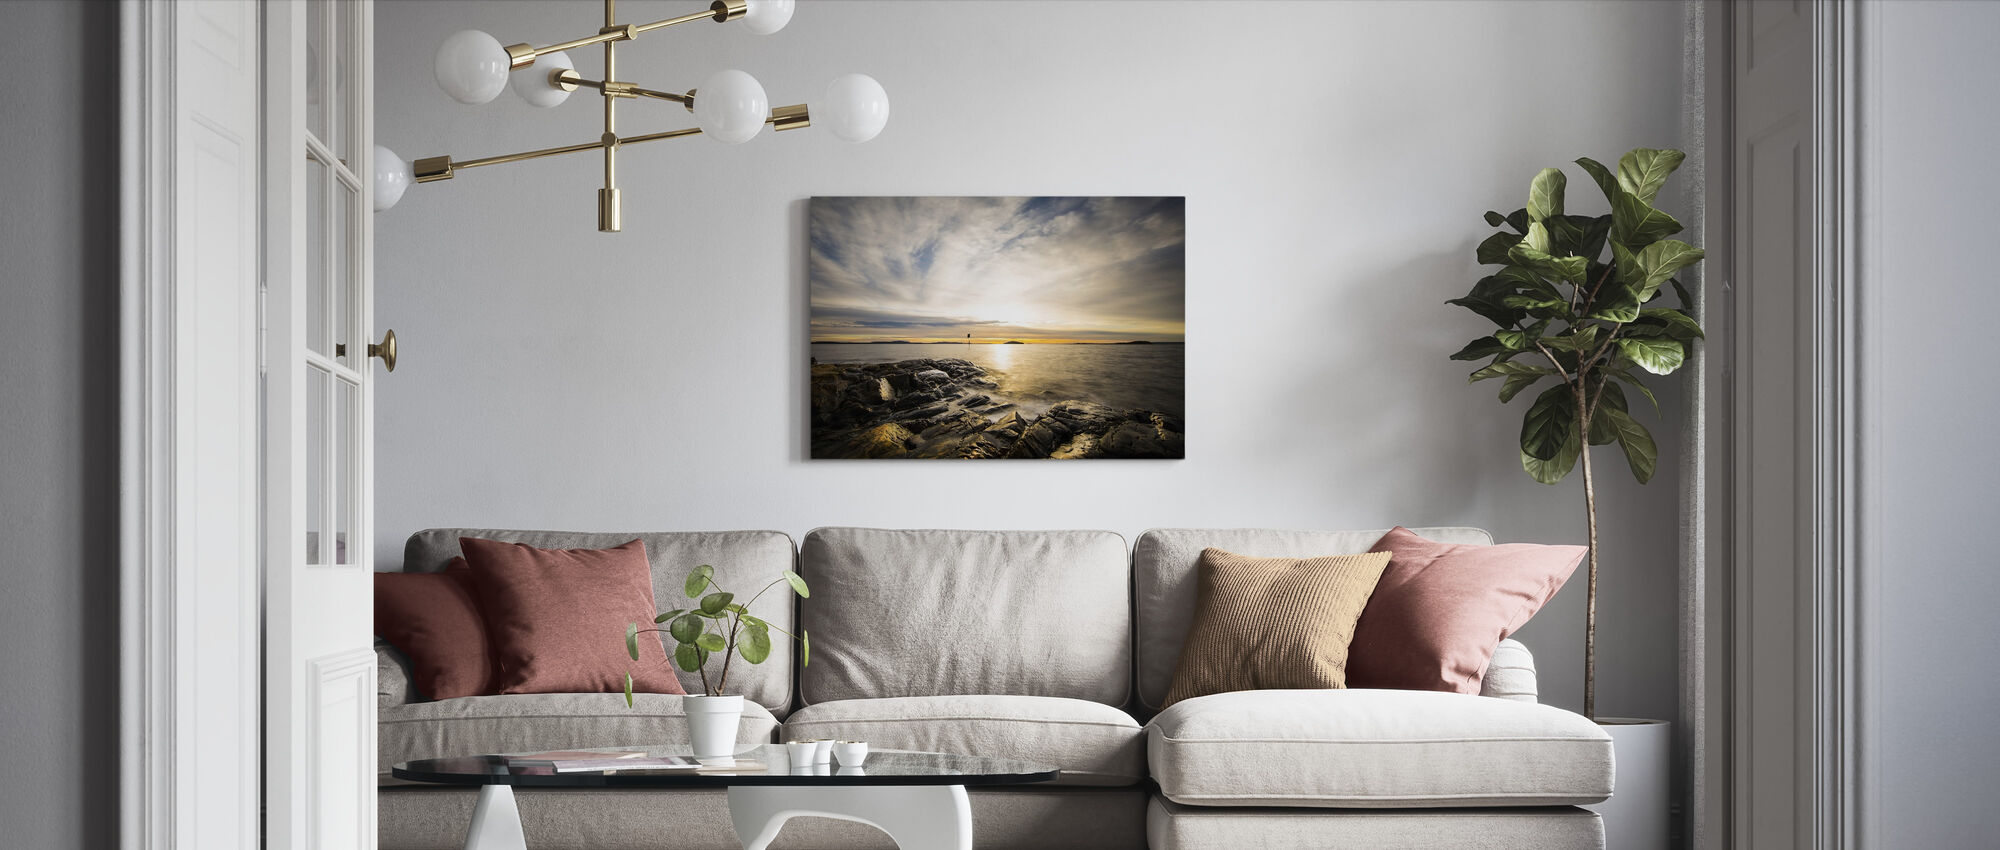 Winter Sunset - Canvas print - Living Room